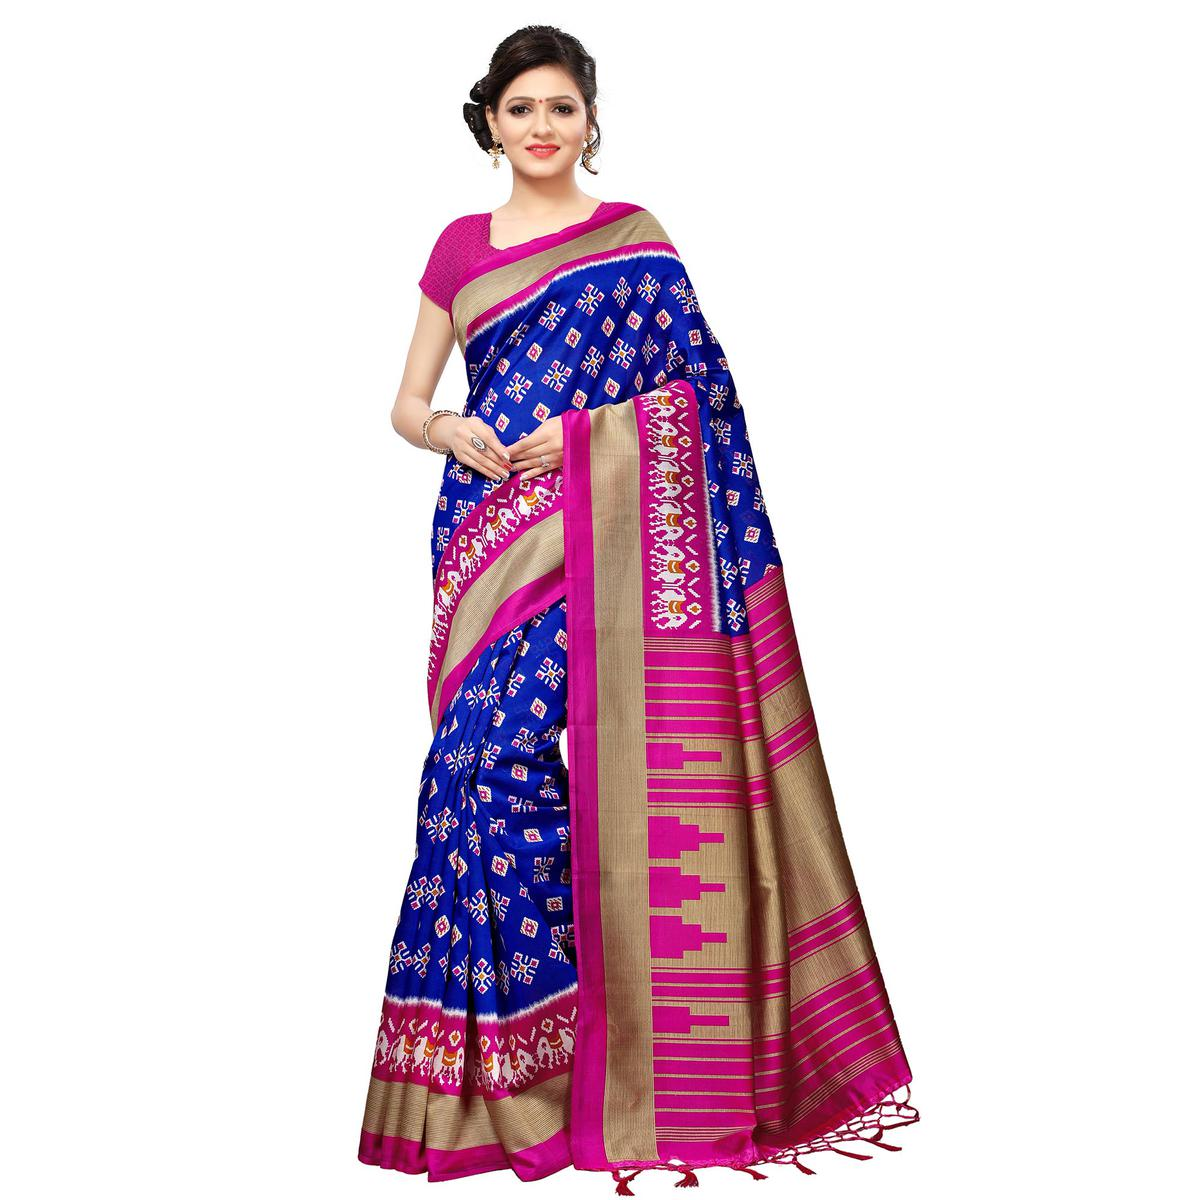 af87c4c509 Buy Blooming Blue Colored Casual Printed Mysore Art Silk Saree For ...